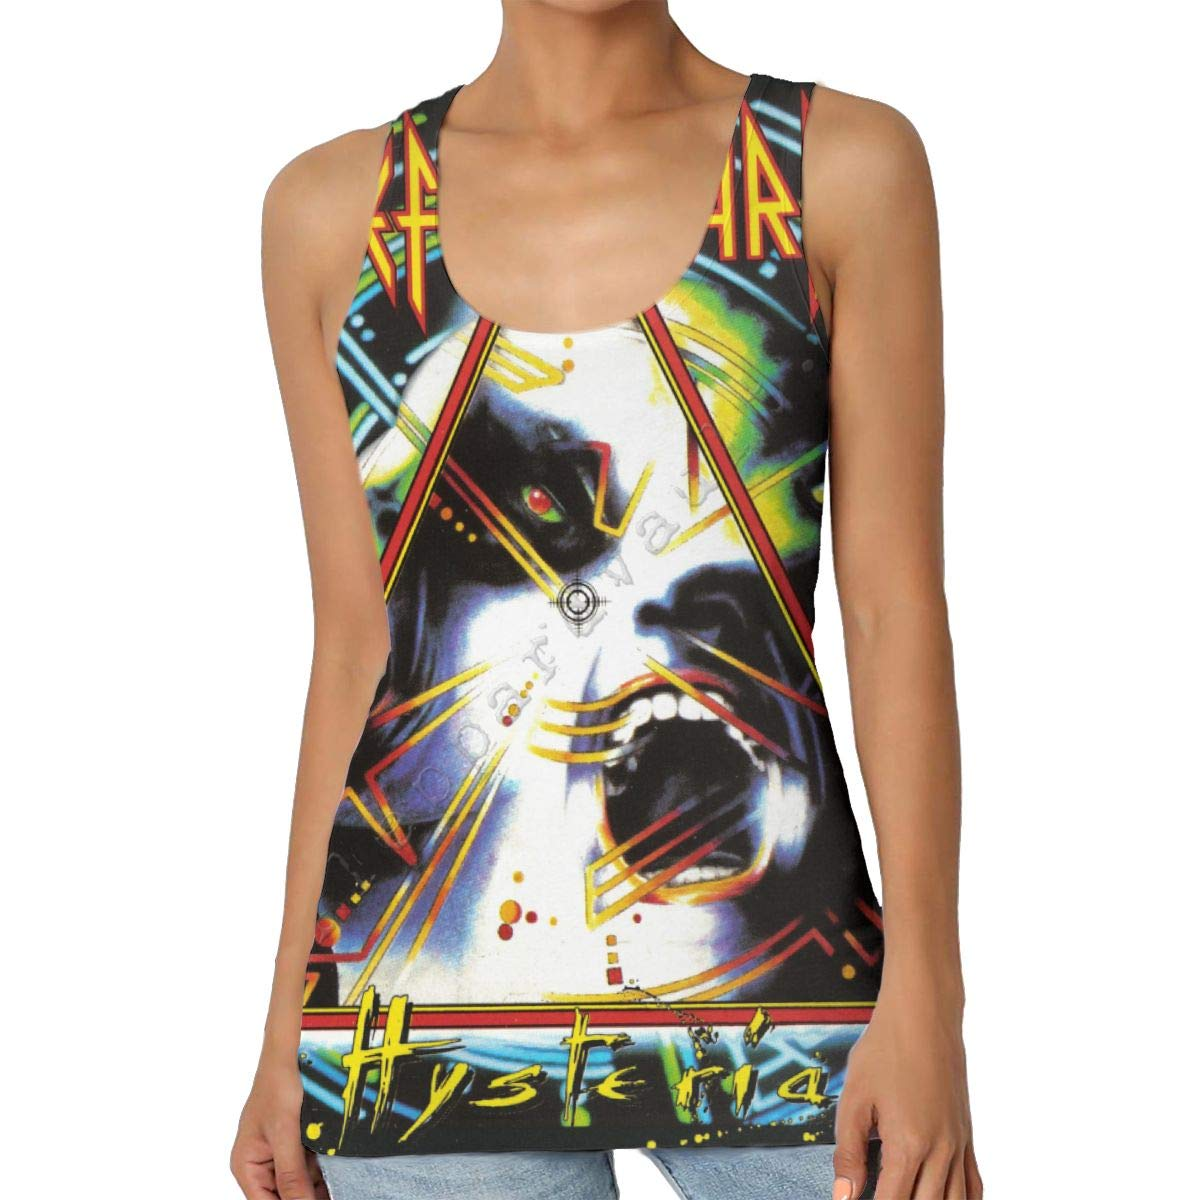 Def Leppard Womens Tank Tops Halter Racerback Casual T Shirts